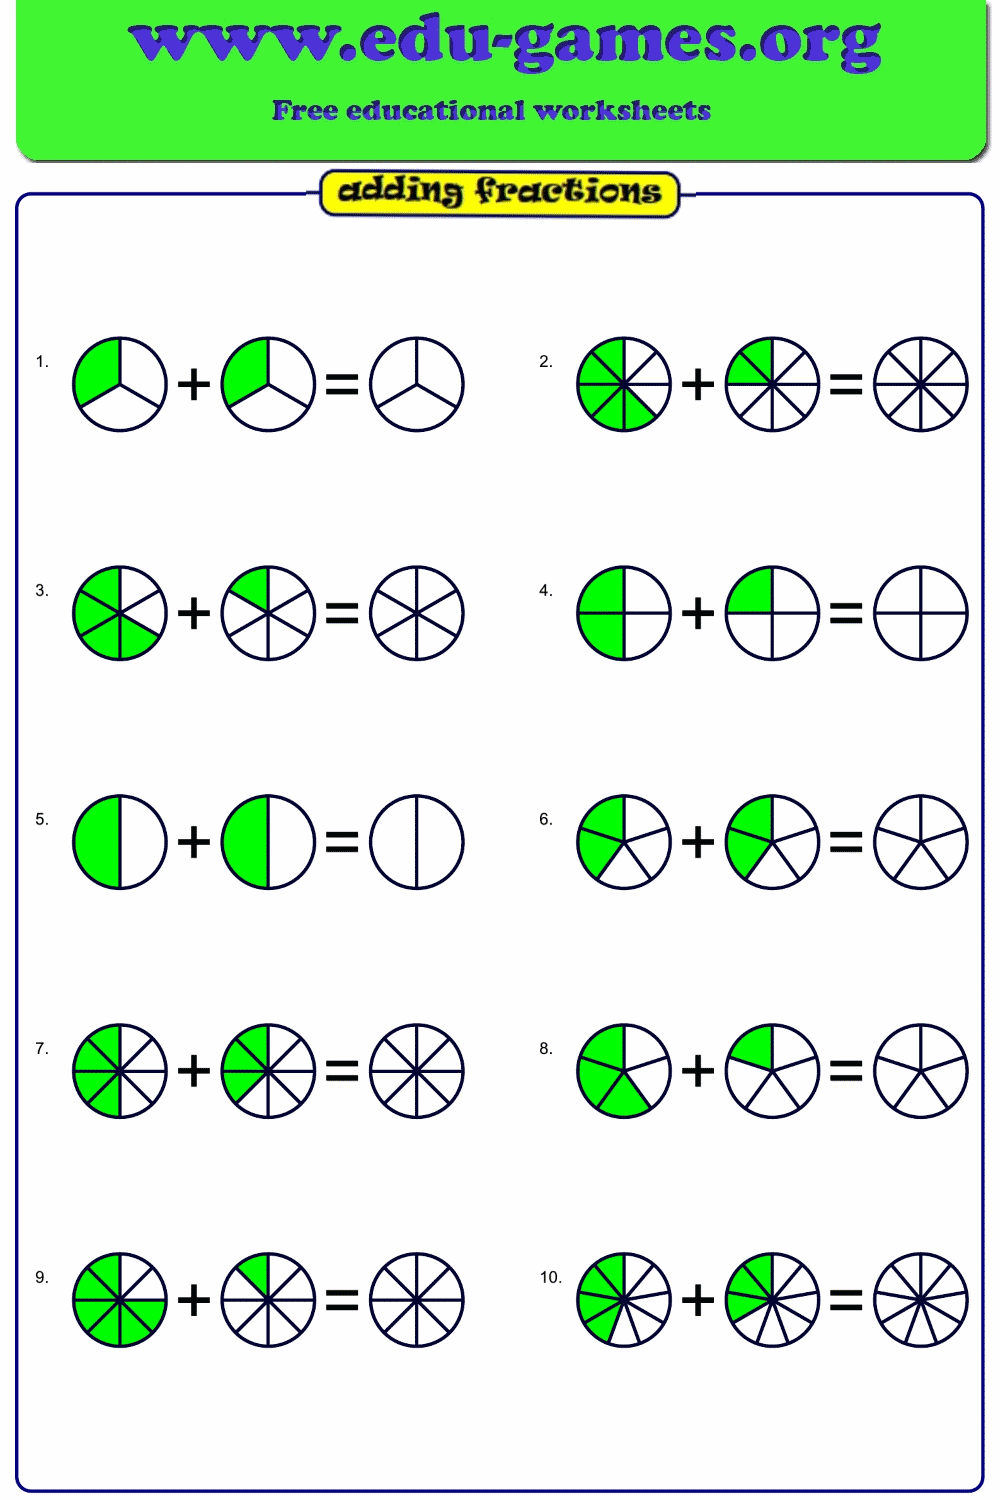 Add Fraction Worksheets The Fractions Are Displayed As Circle Parts These Worksheets Are For Beginners Fractions Worksheets Adding Fractions Fractions [ 1500 x 1000 Pixel ]